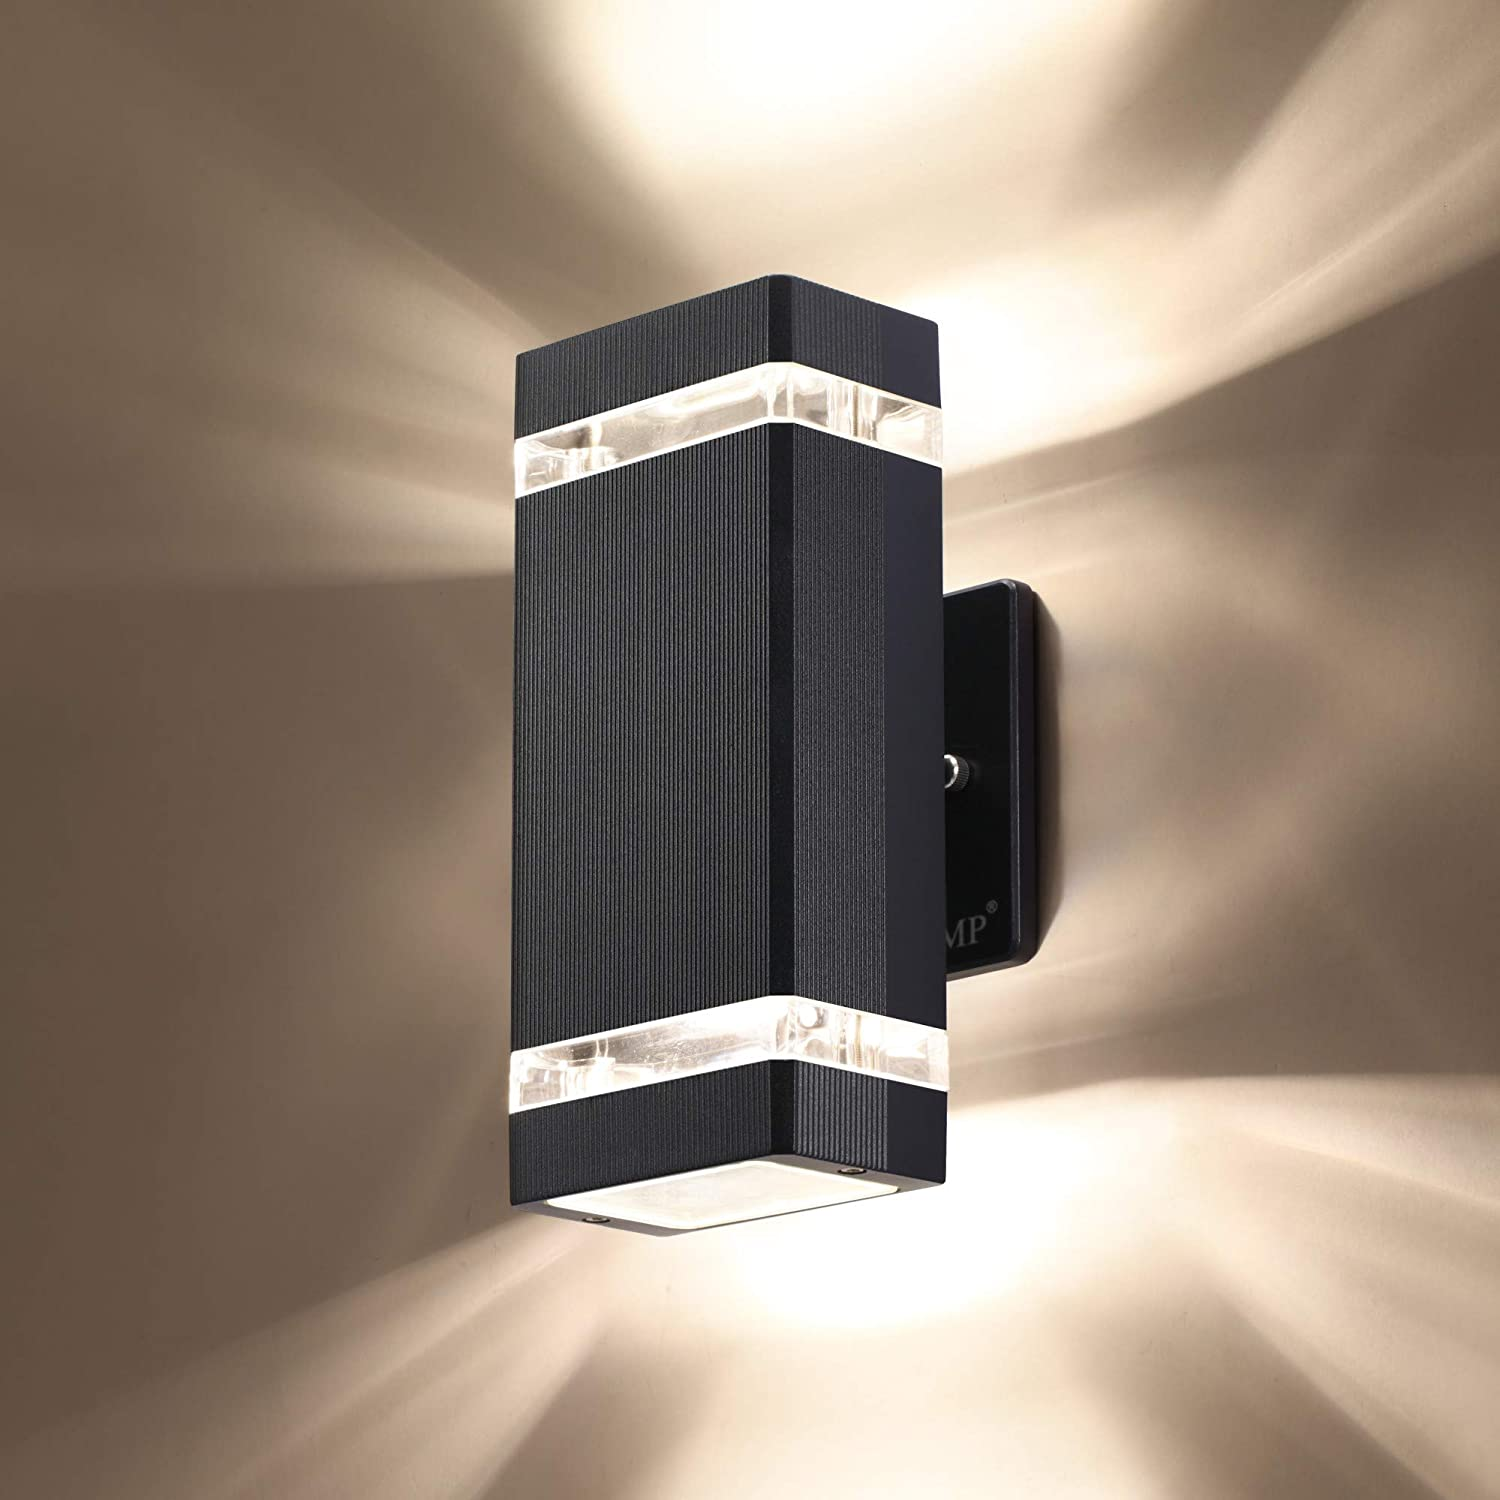 Amazon Com Lmp Led Square Up And Down Lights Outdoor Wall Light Body In Aluminum Waterproof Outdoor Wall Lamps 3000k 5w With Certificate Etl 1 Pack Home Kitchen